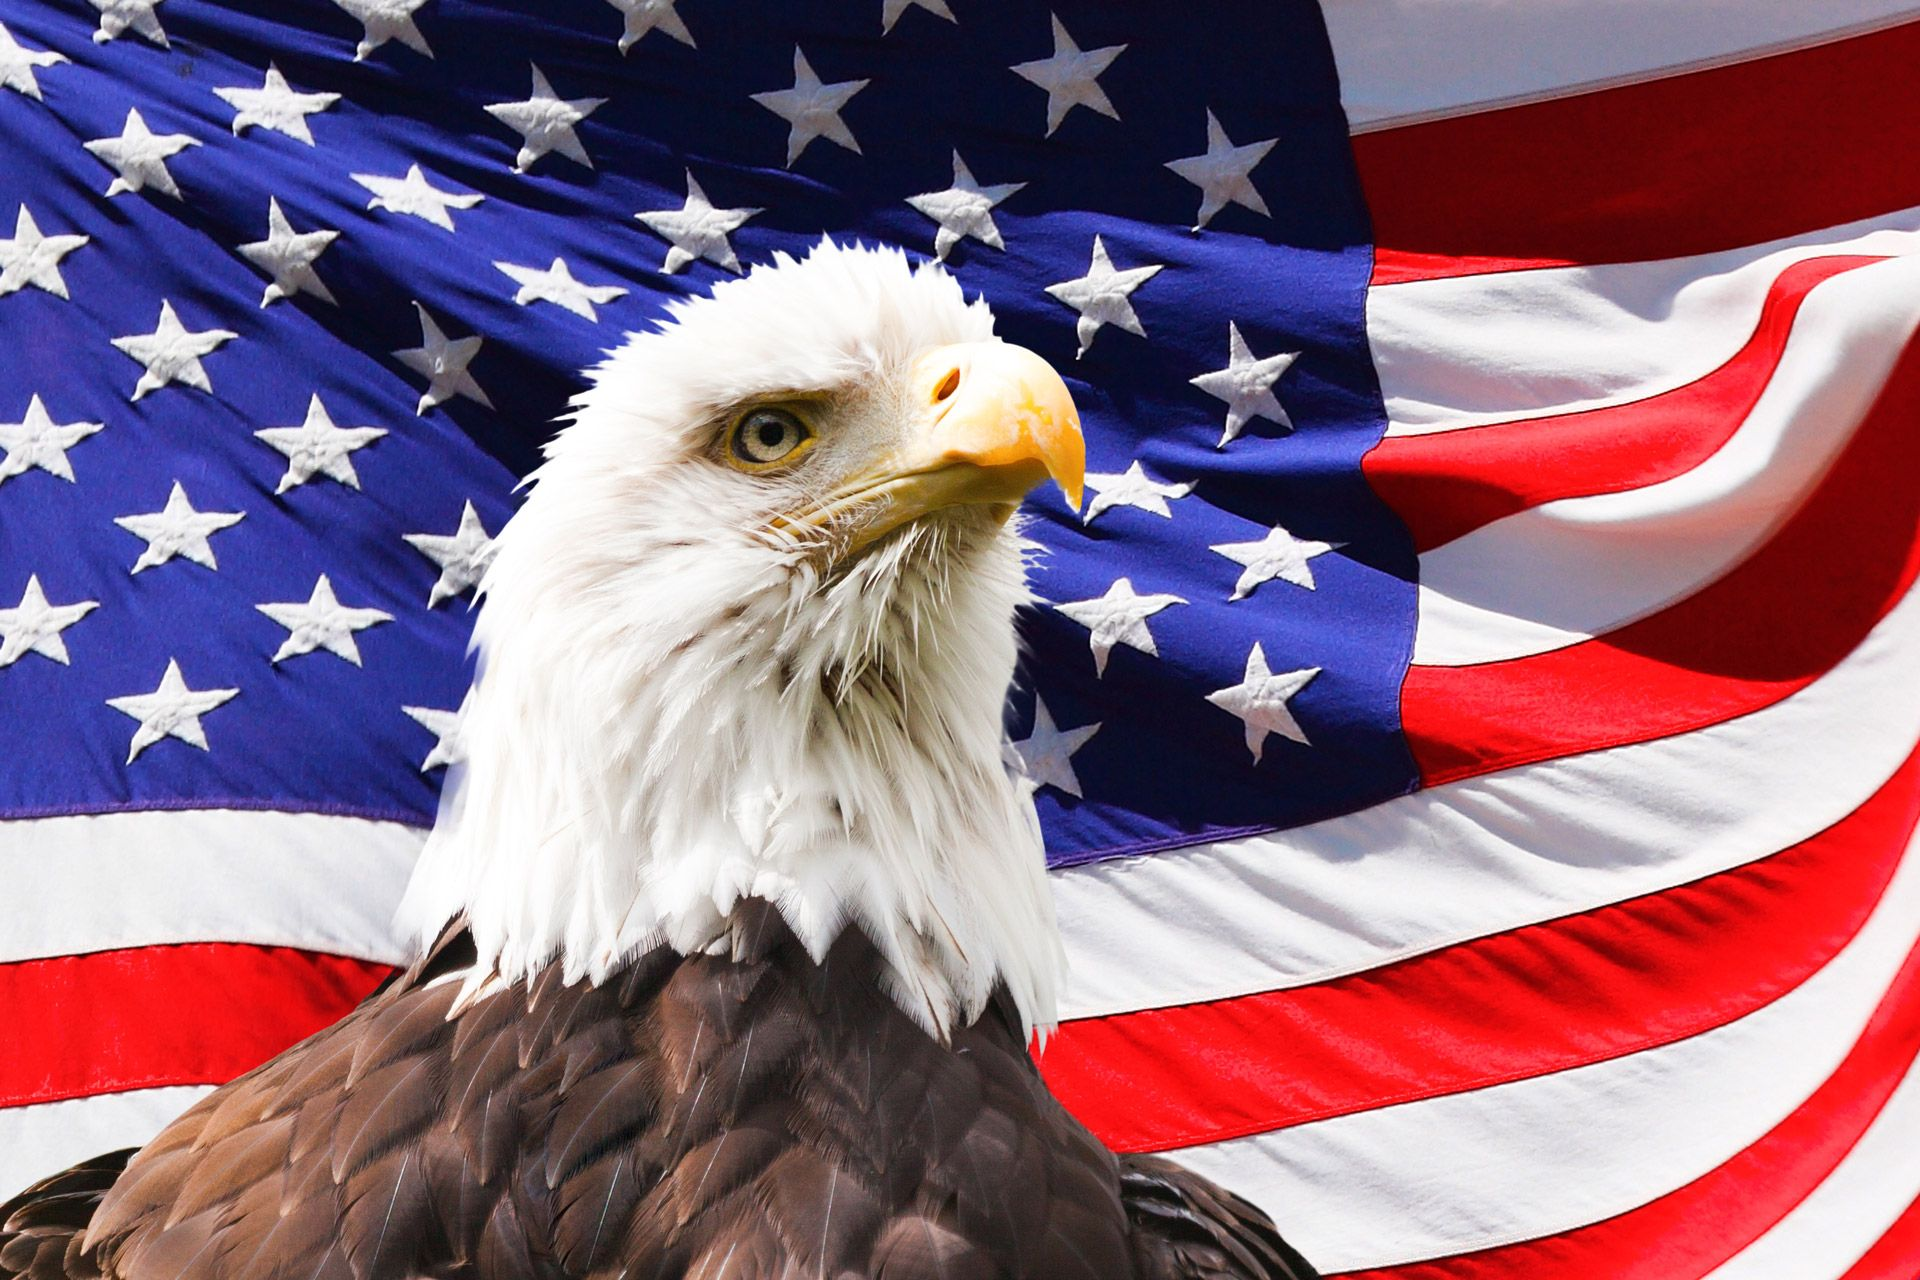 Coloring Pages United States : American bald eagle coloring page flag day fun fun